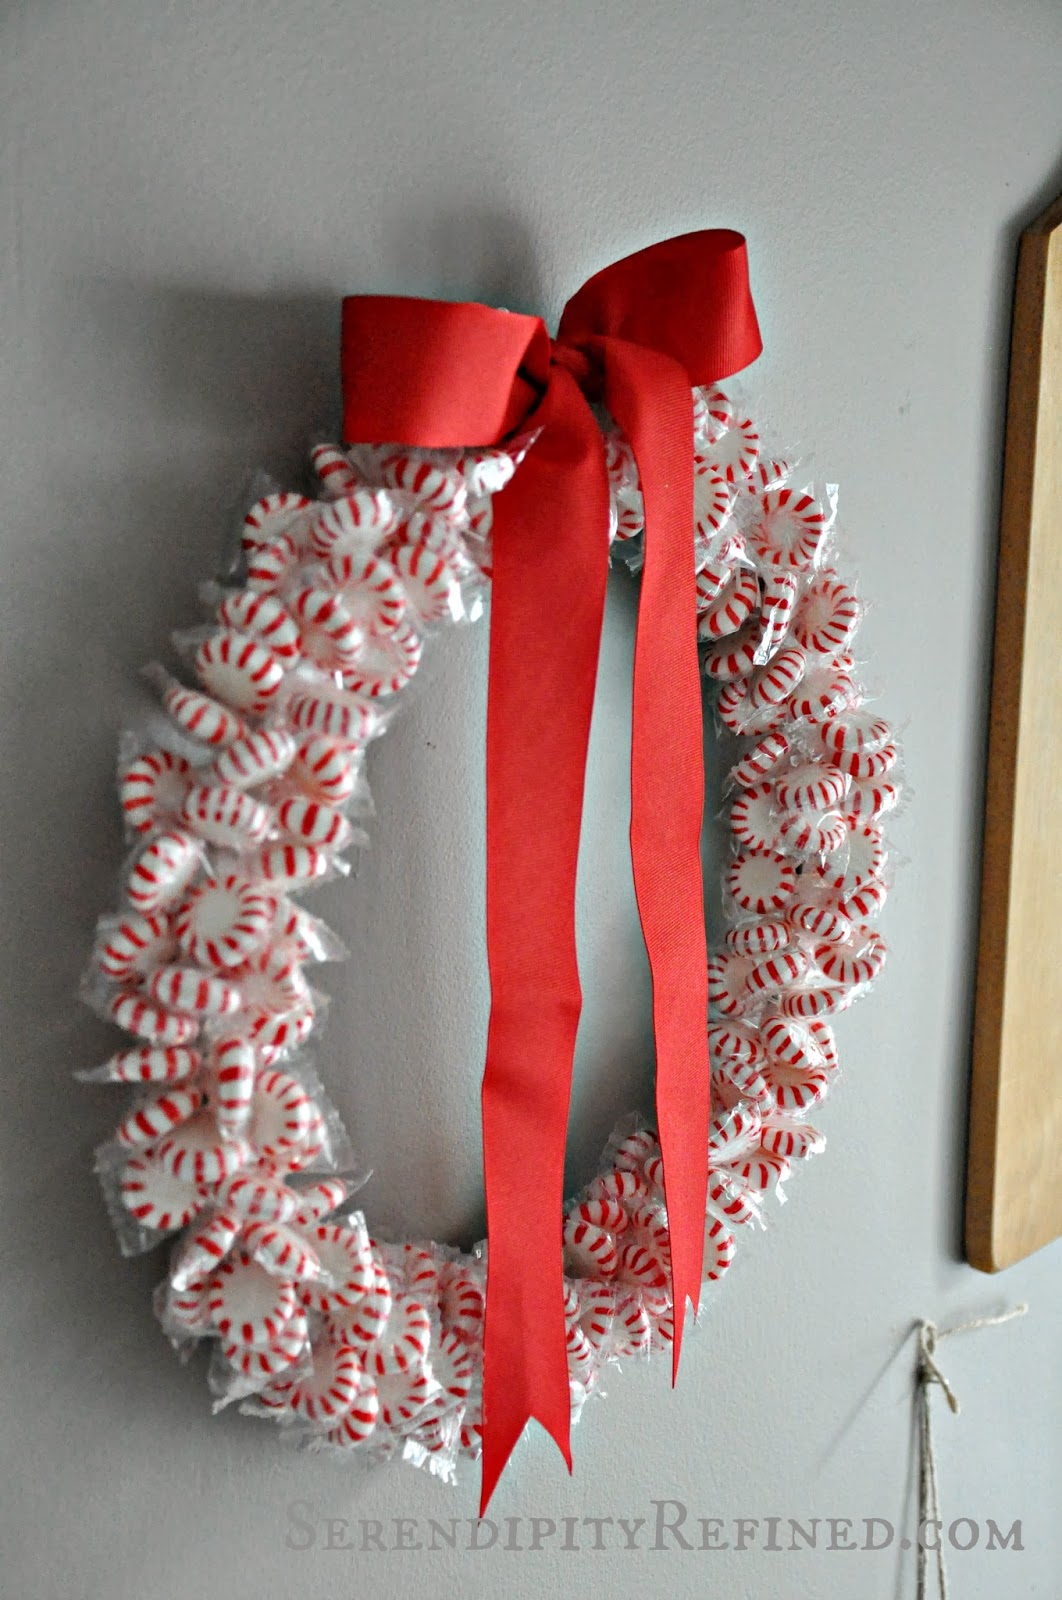 Serendipity Refined Blog: DIY Holiday Peppermint Wreath ...